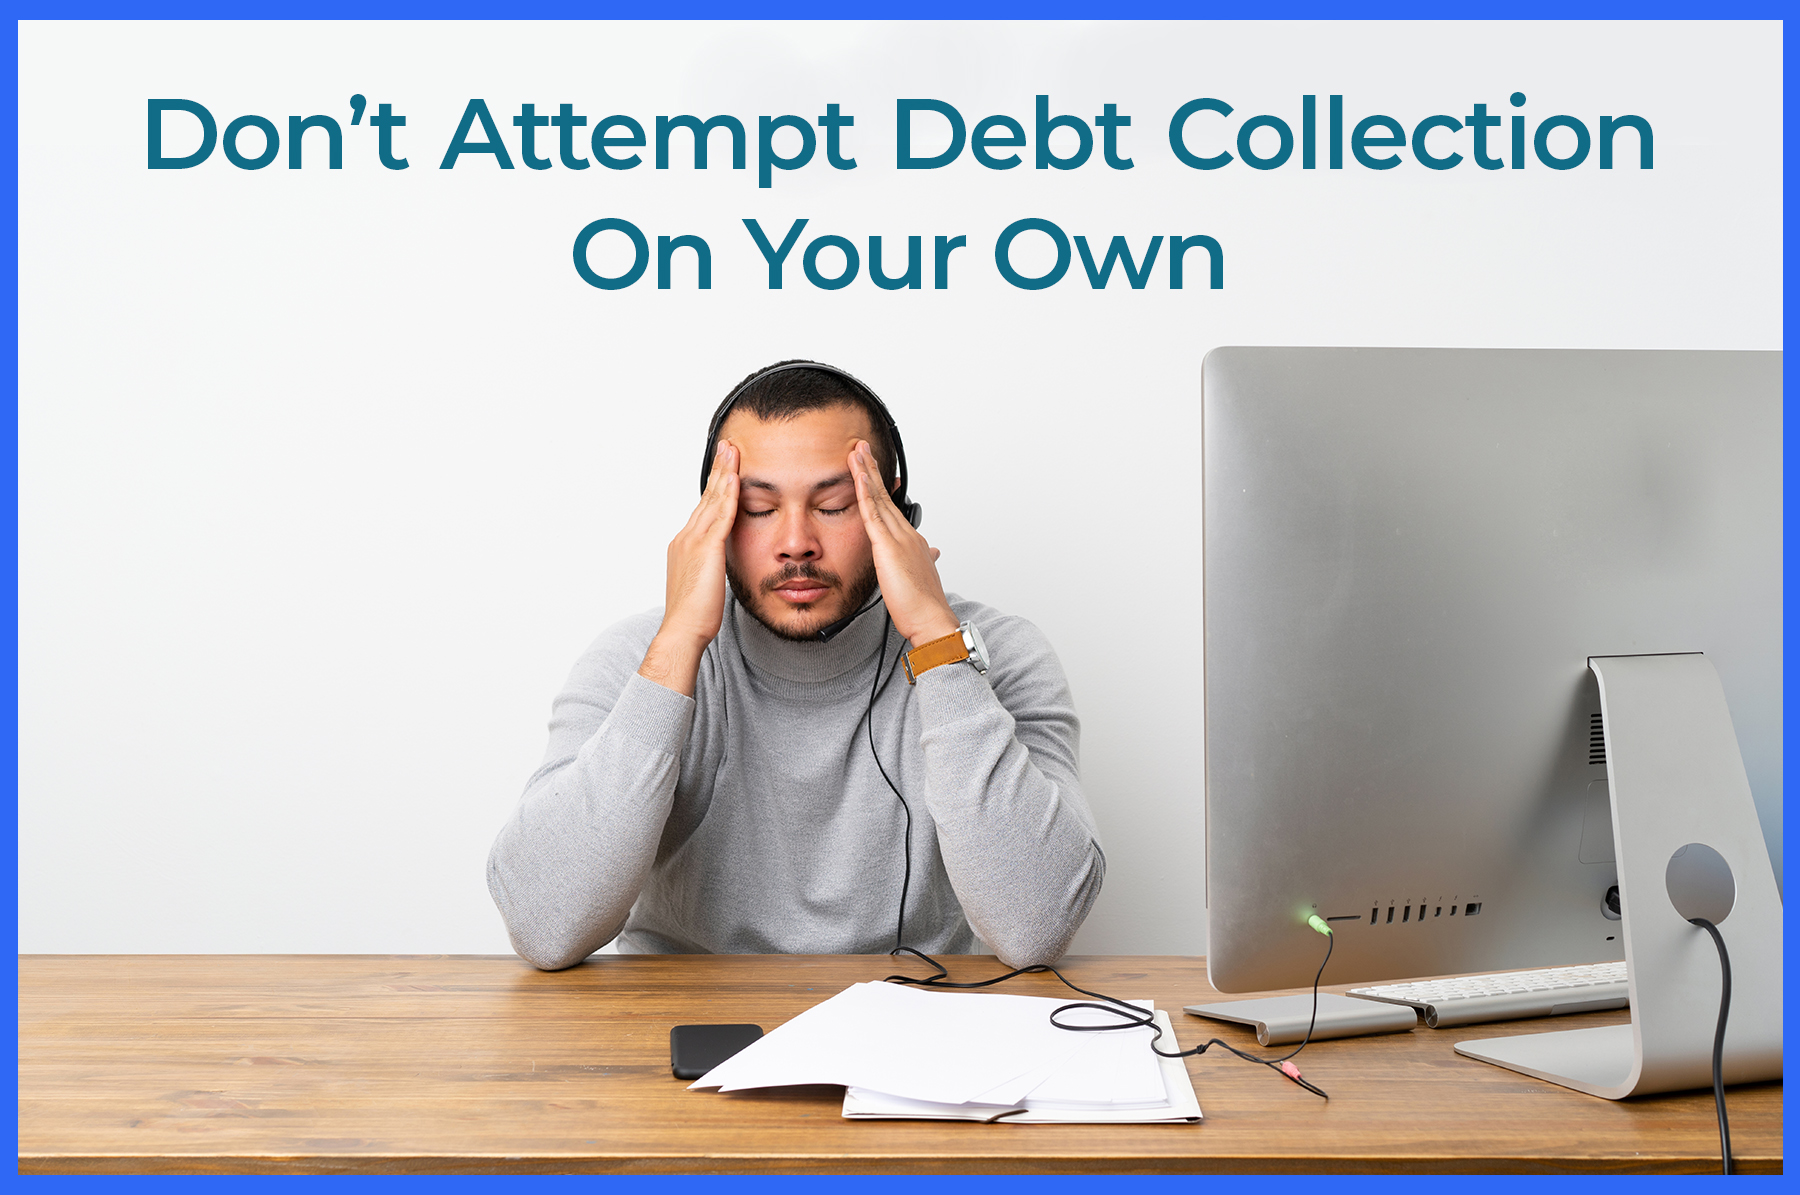 business owner stressing over commercial debt collection